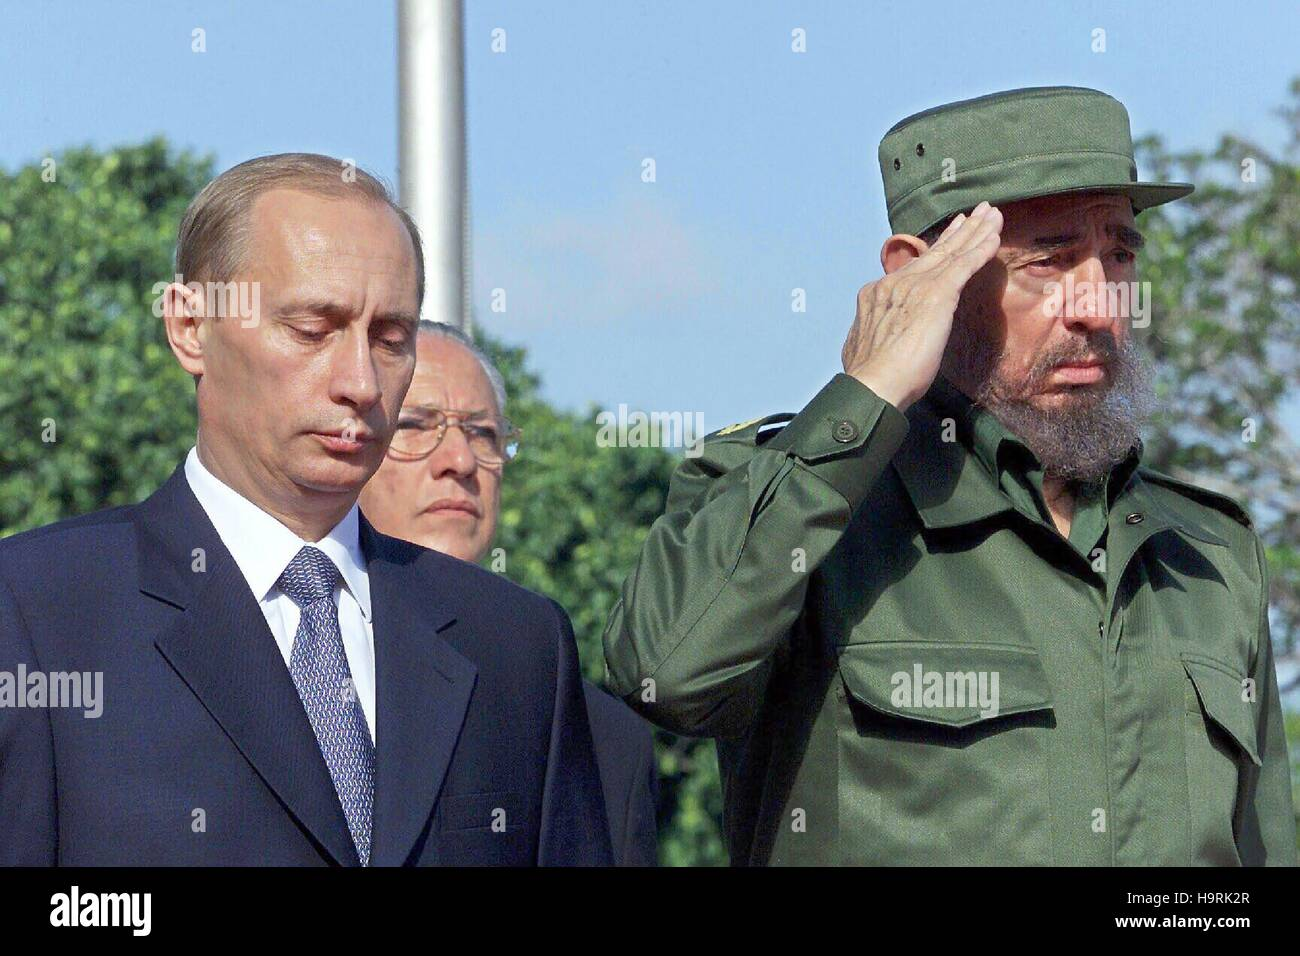 Fidel Castro, pictured with Russian President, Vladimir Putin, at the 'Palace of the Revolution,'. Putin - Stock Image